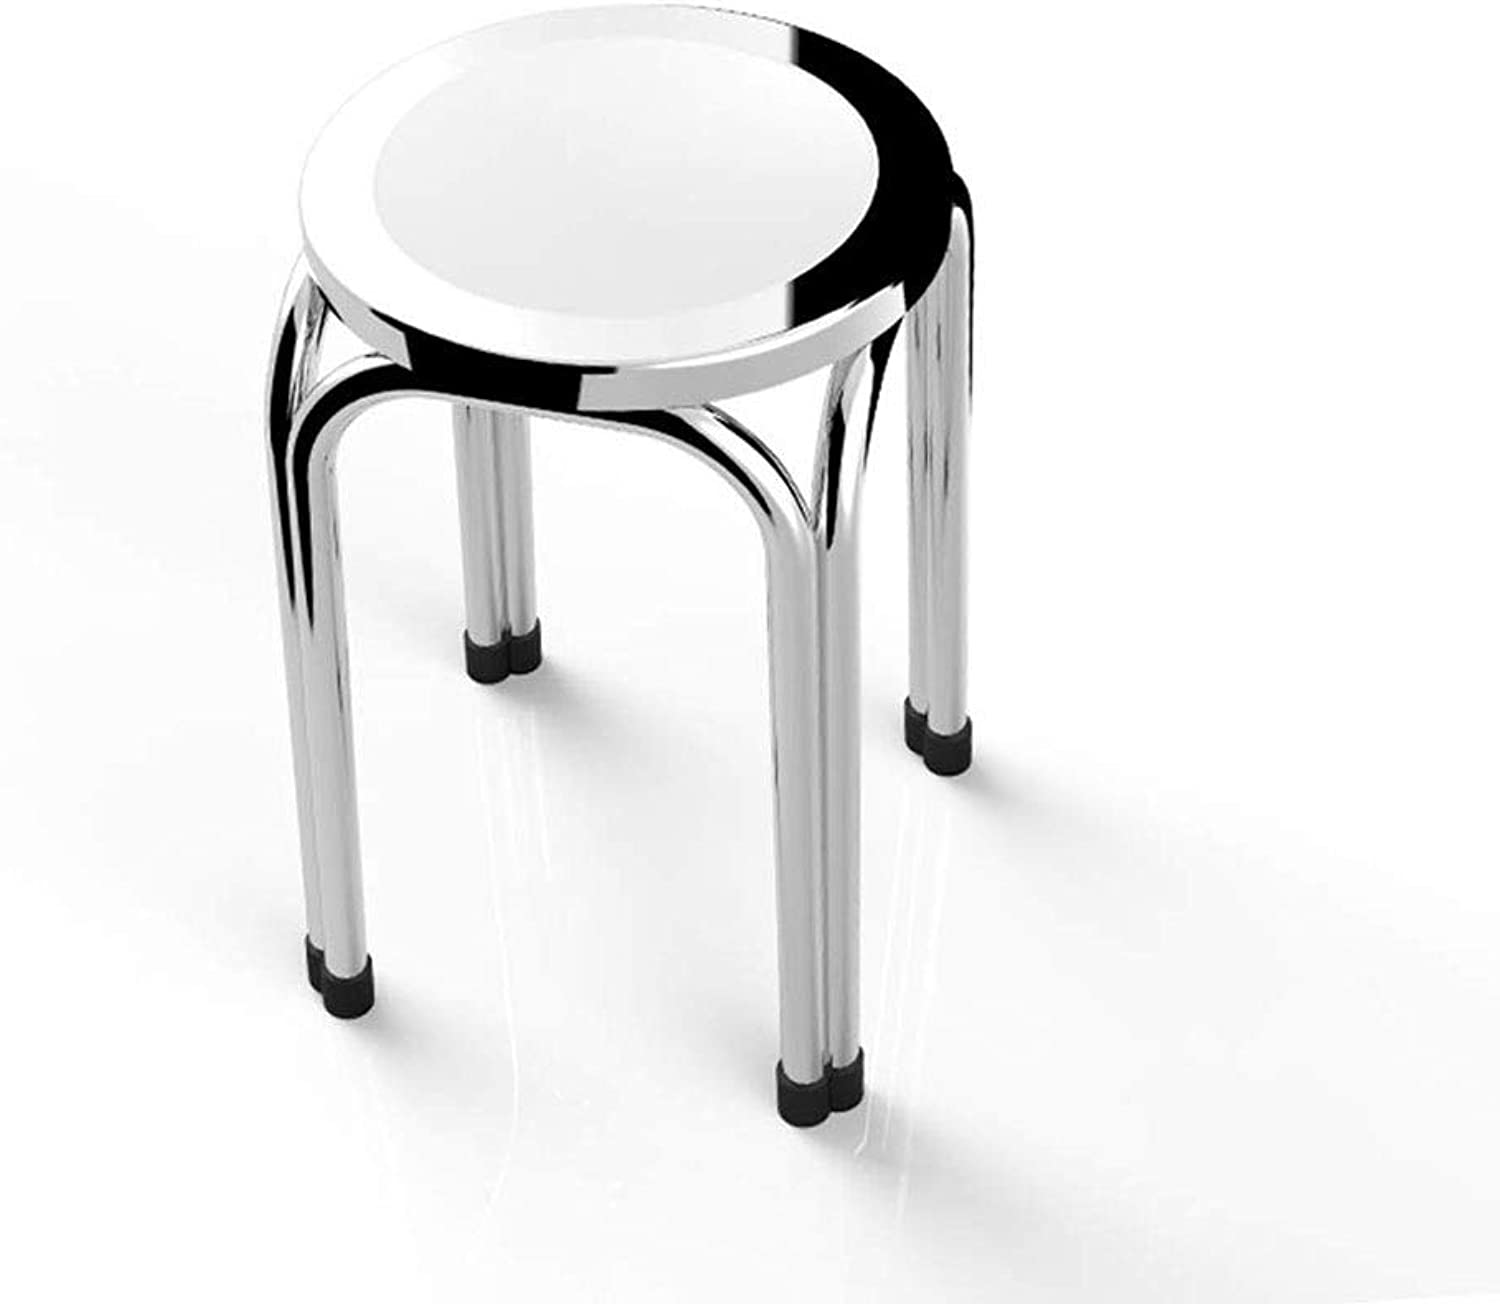 ZDYUY Stainless Steel Folding Stool Table Stool Home Stool Round Dining Chair High Bench